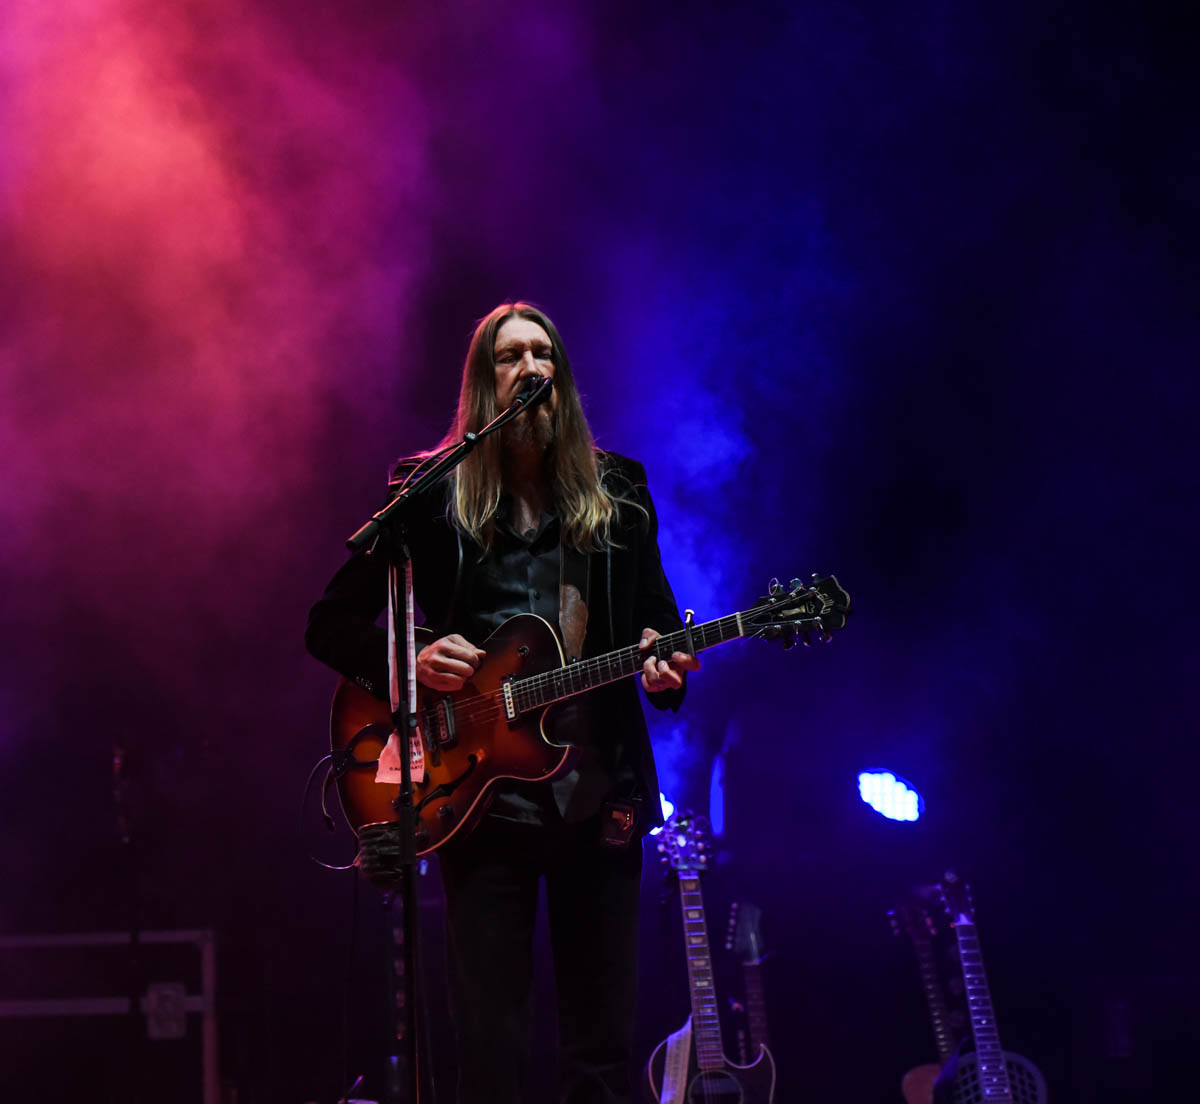 Oliver Wood  of The Wood Brothers | Red Rocks Amphitheatre | Morrison, CO. | 09/05/2019 | Photos: ©Pix Meyers 2019